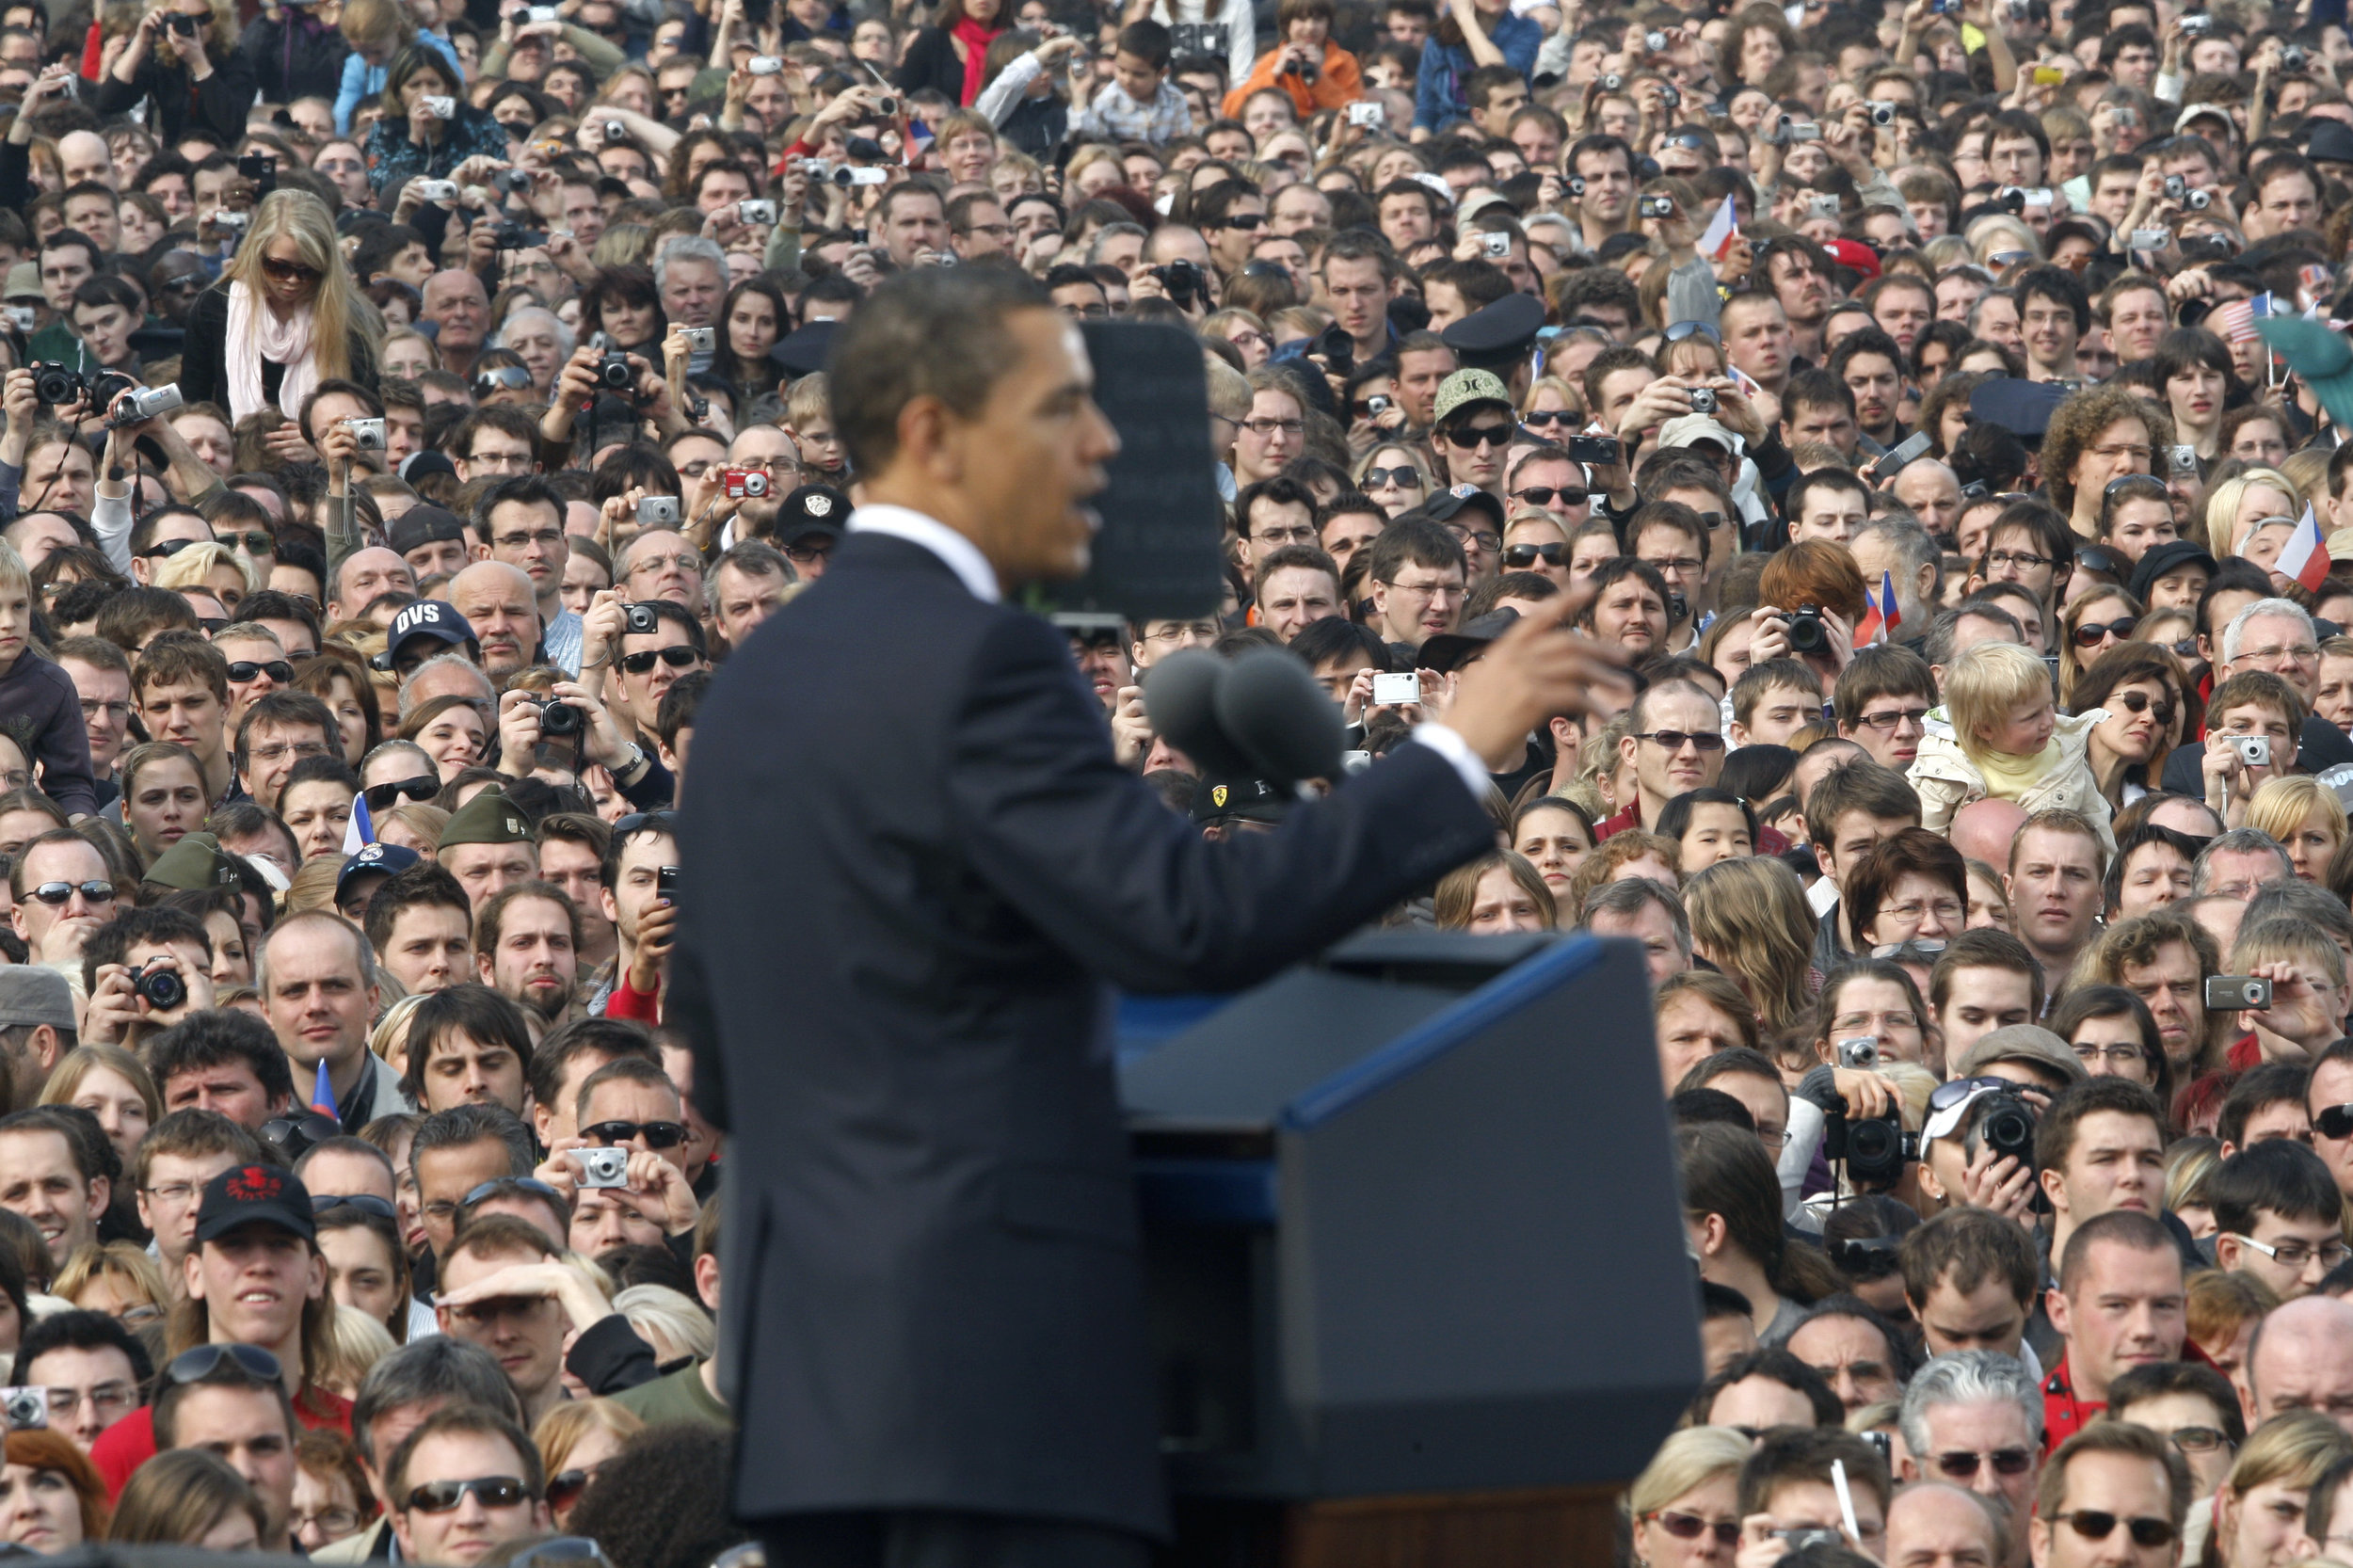 President Obama describing his nuclear-free vision in Prague. (Brookings)